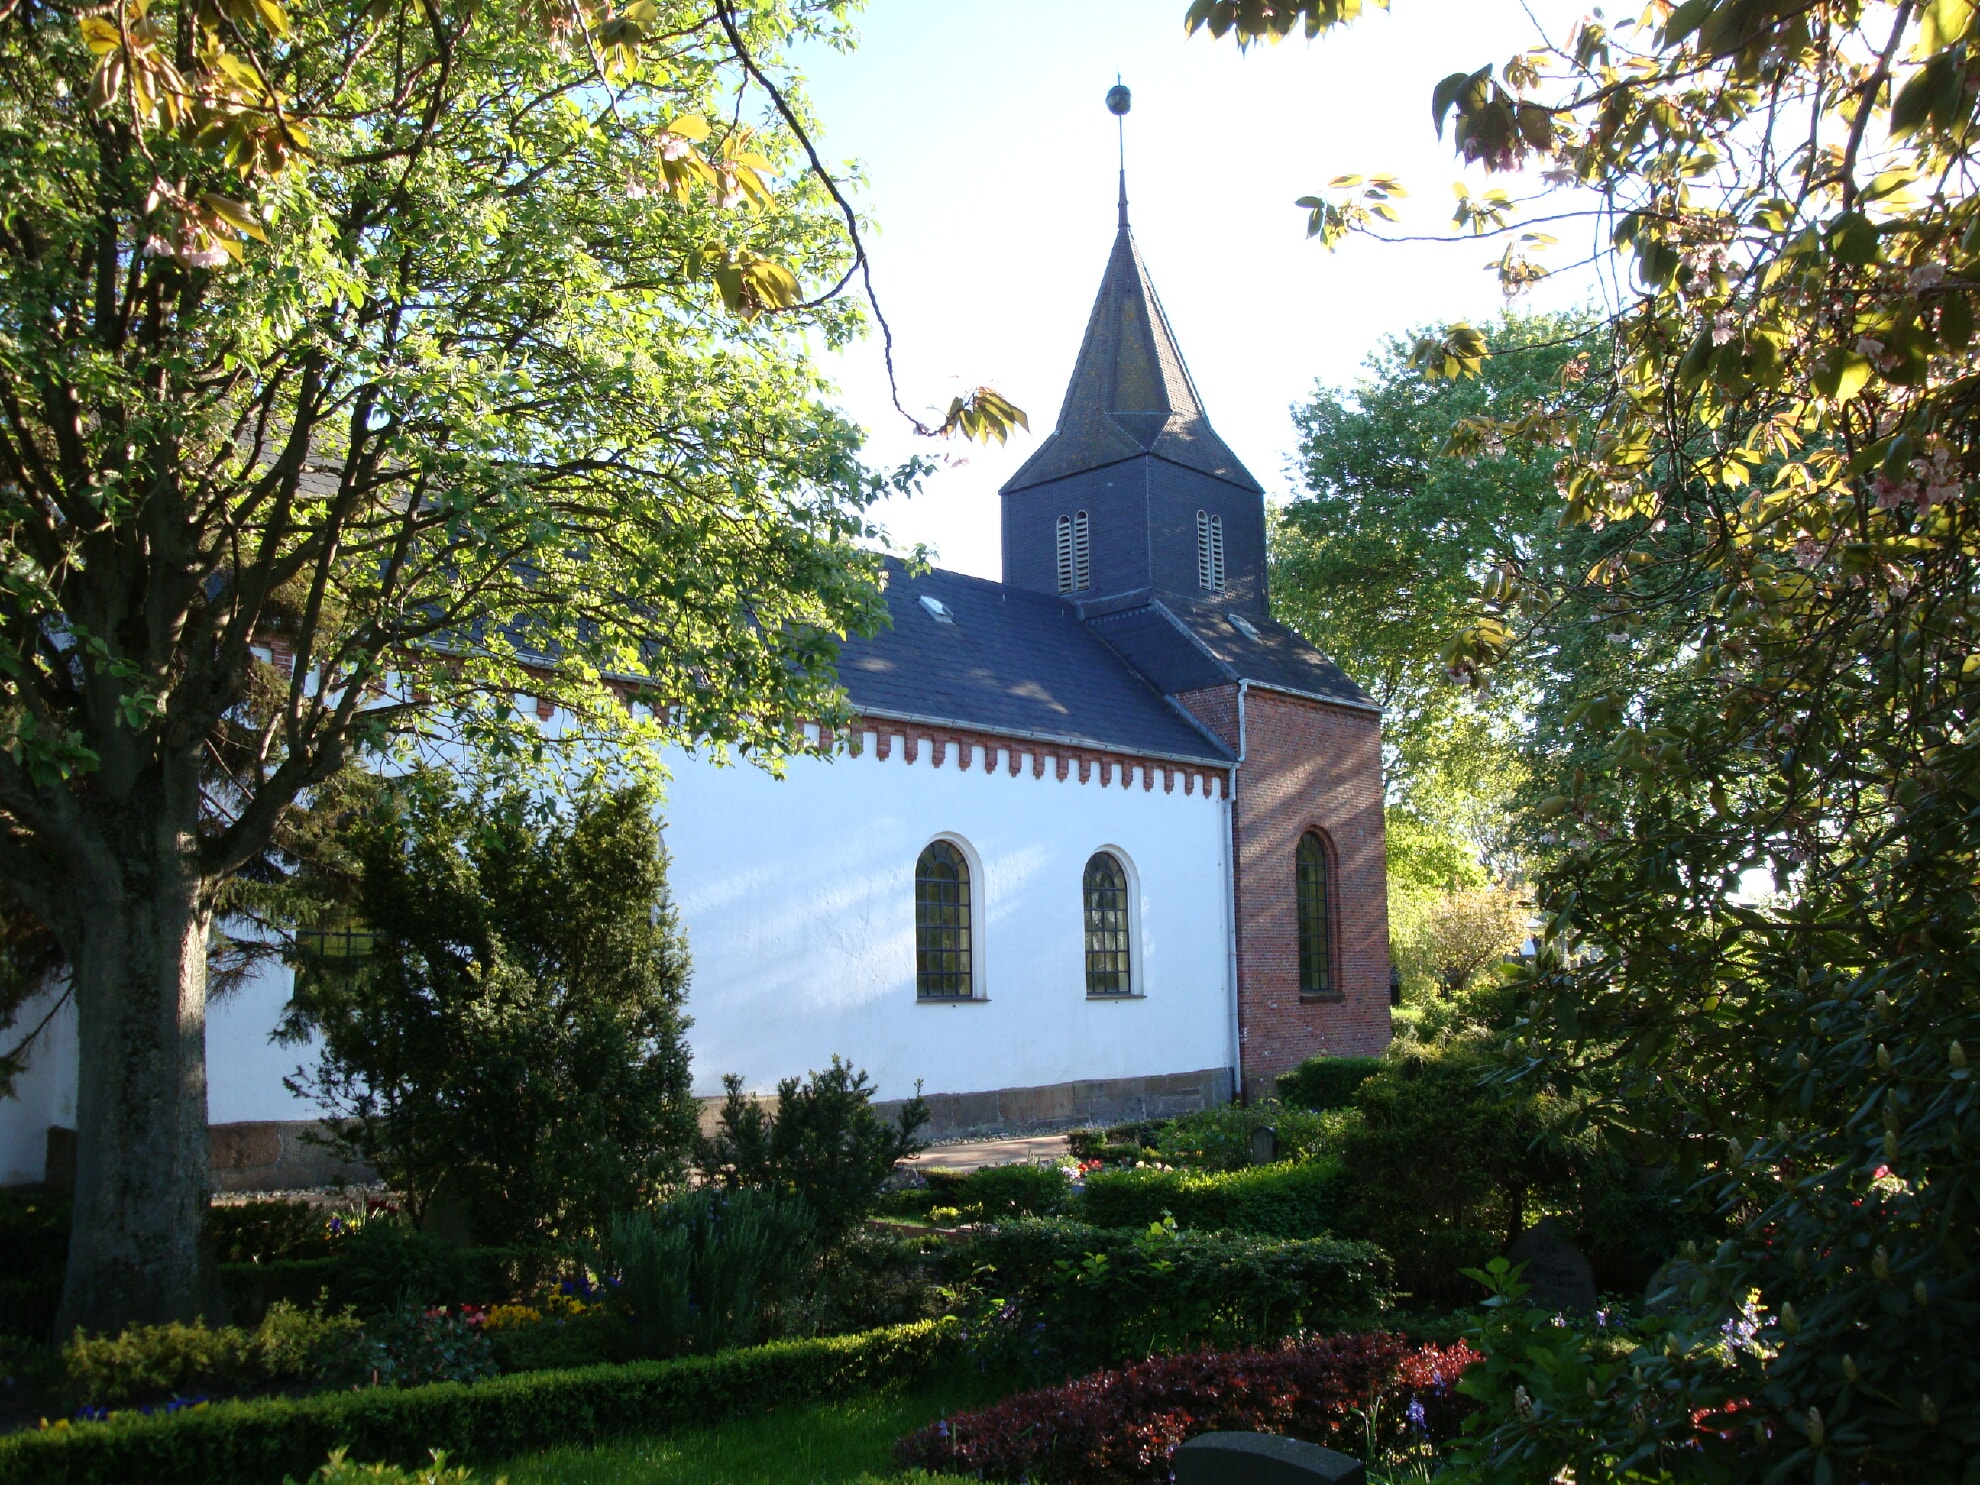 Kirche St. Niels in Westerland